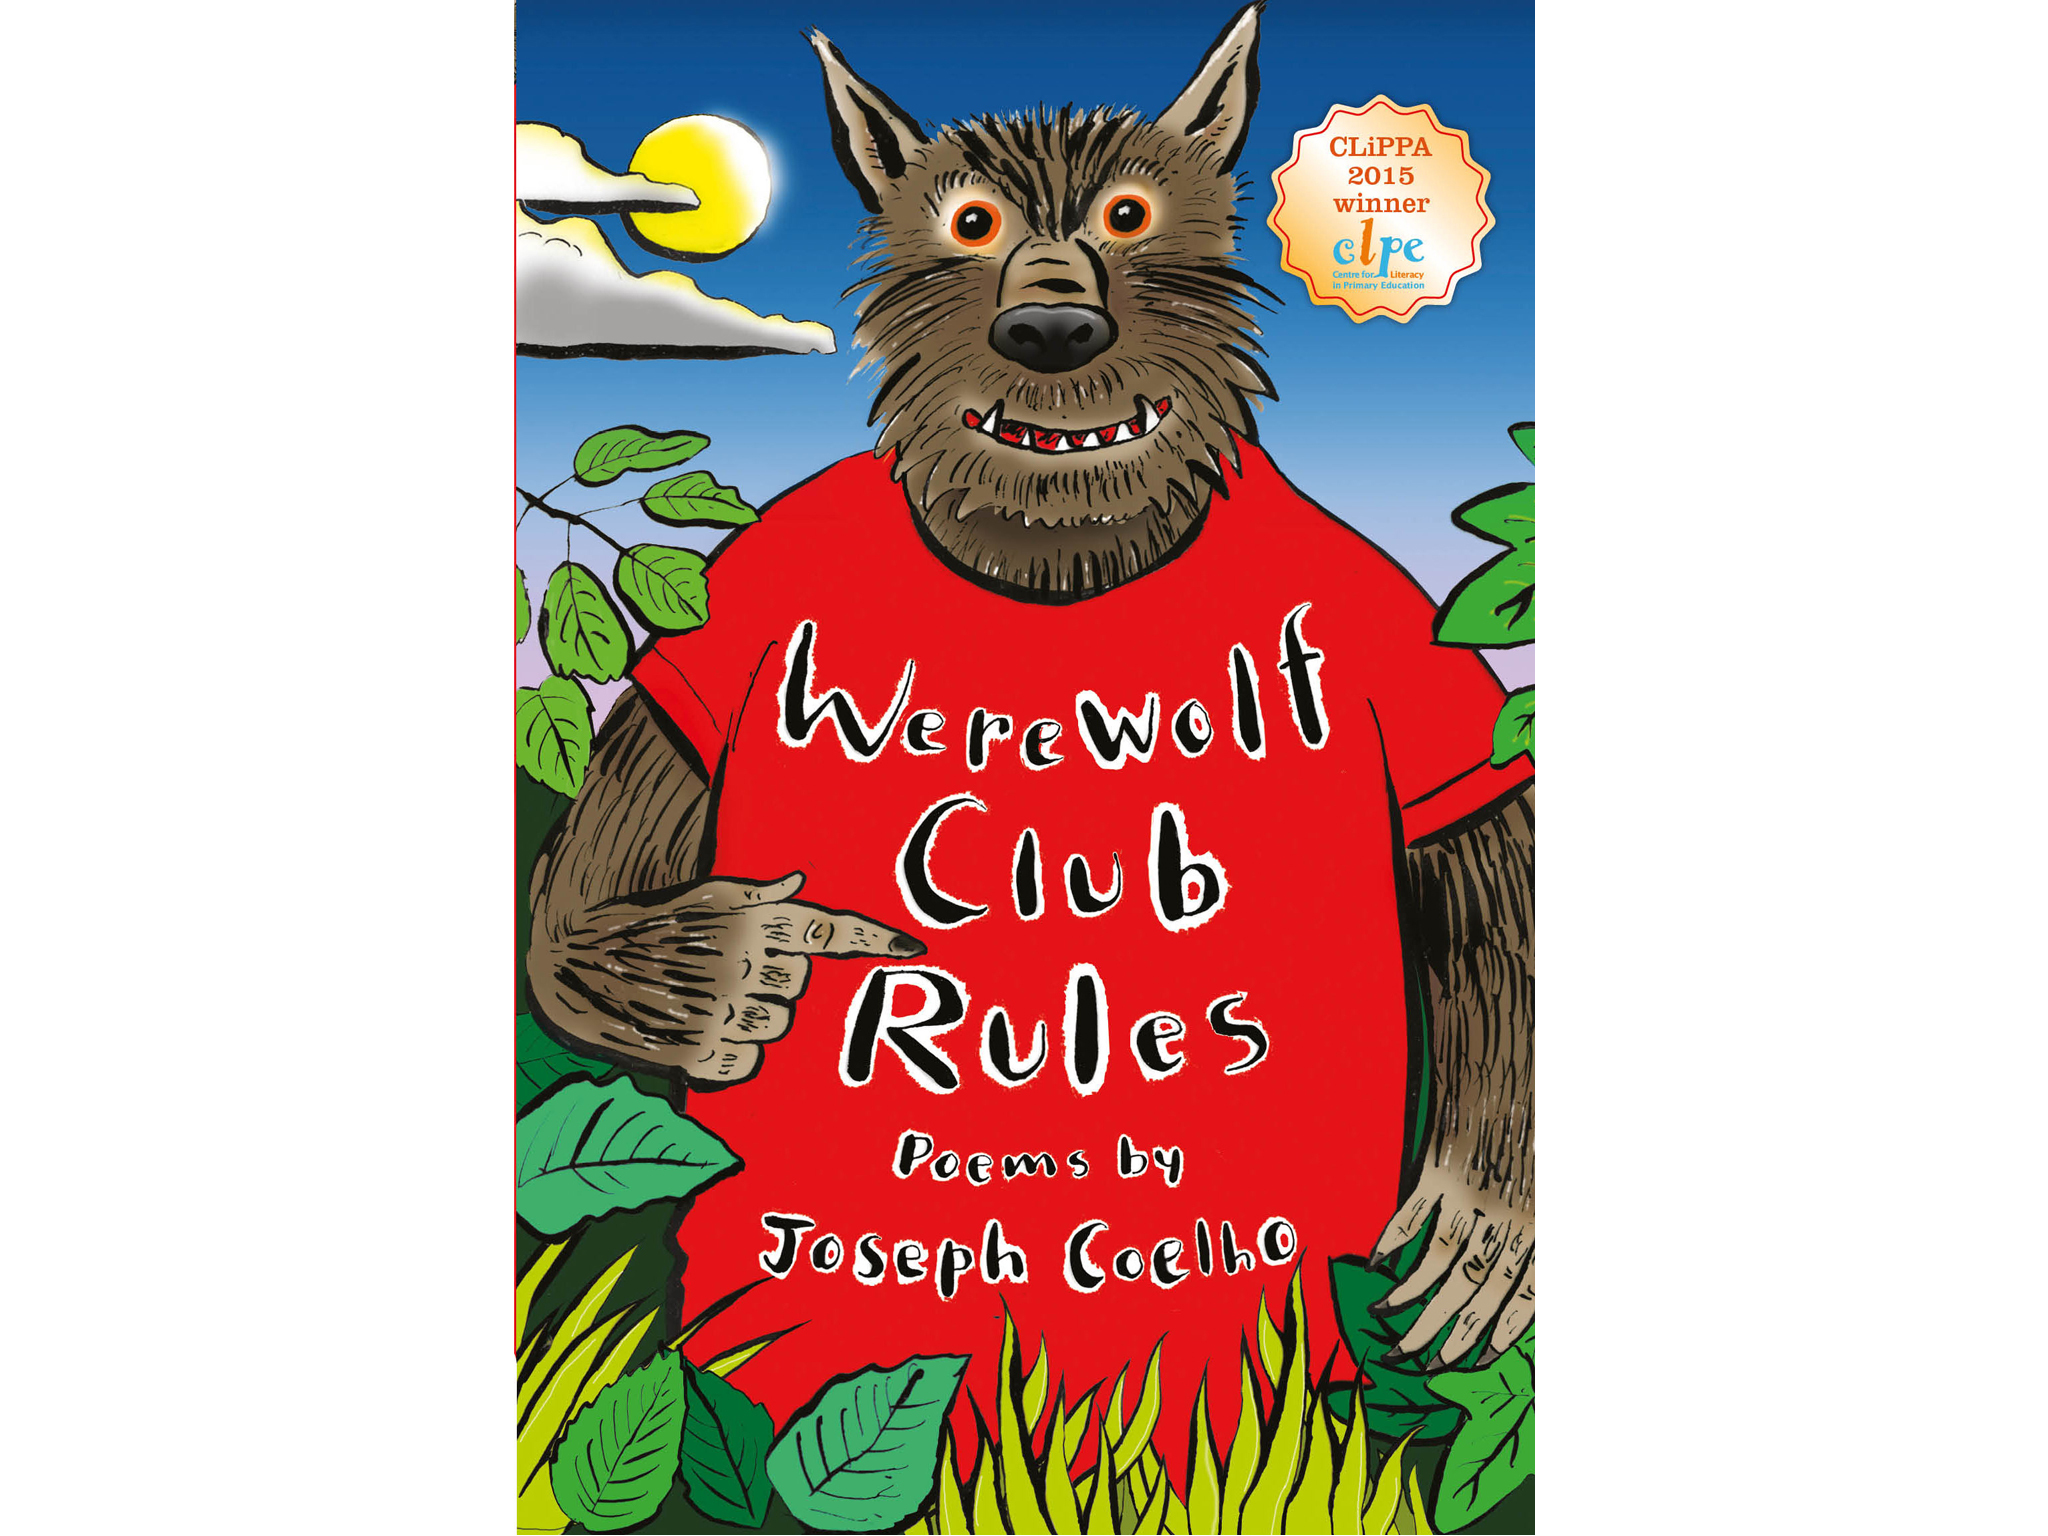 100 best children's books: Warewolf club rules